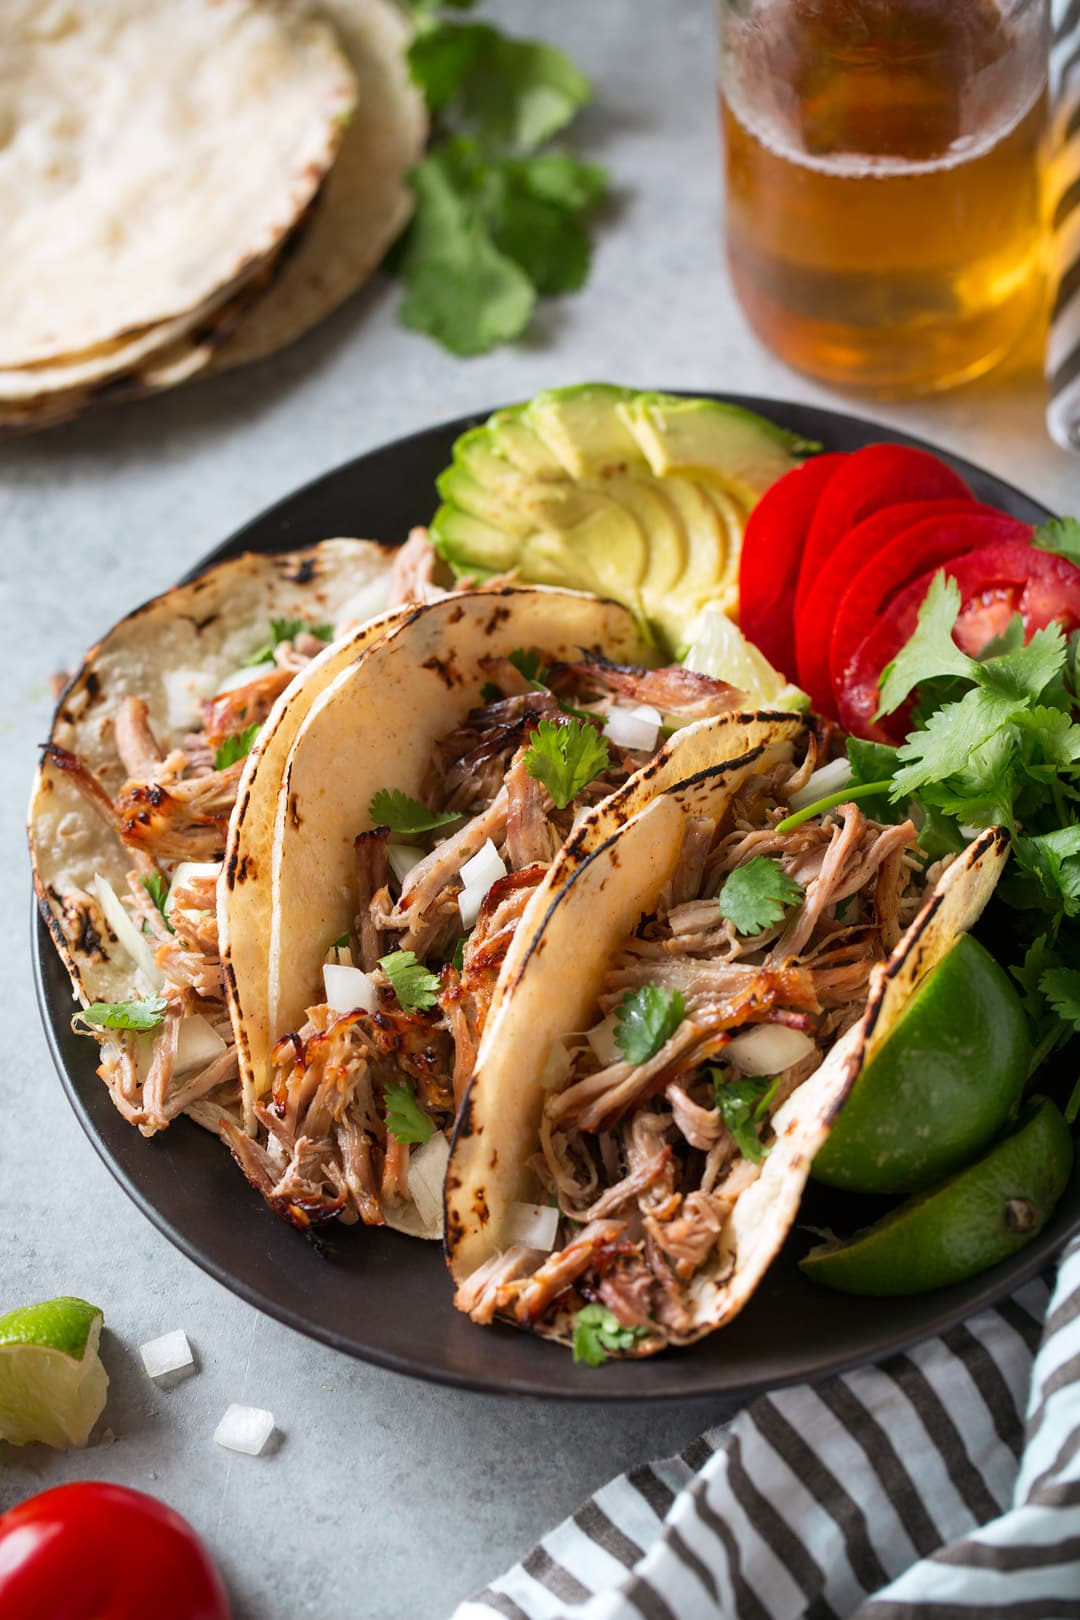 Three carnitas tacos shown here on black a plate in corn tortillas